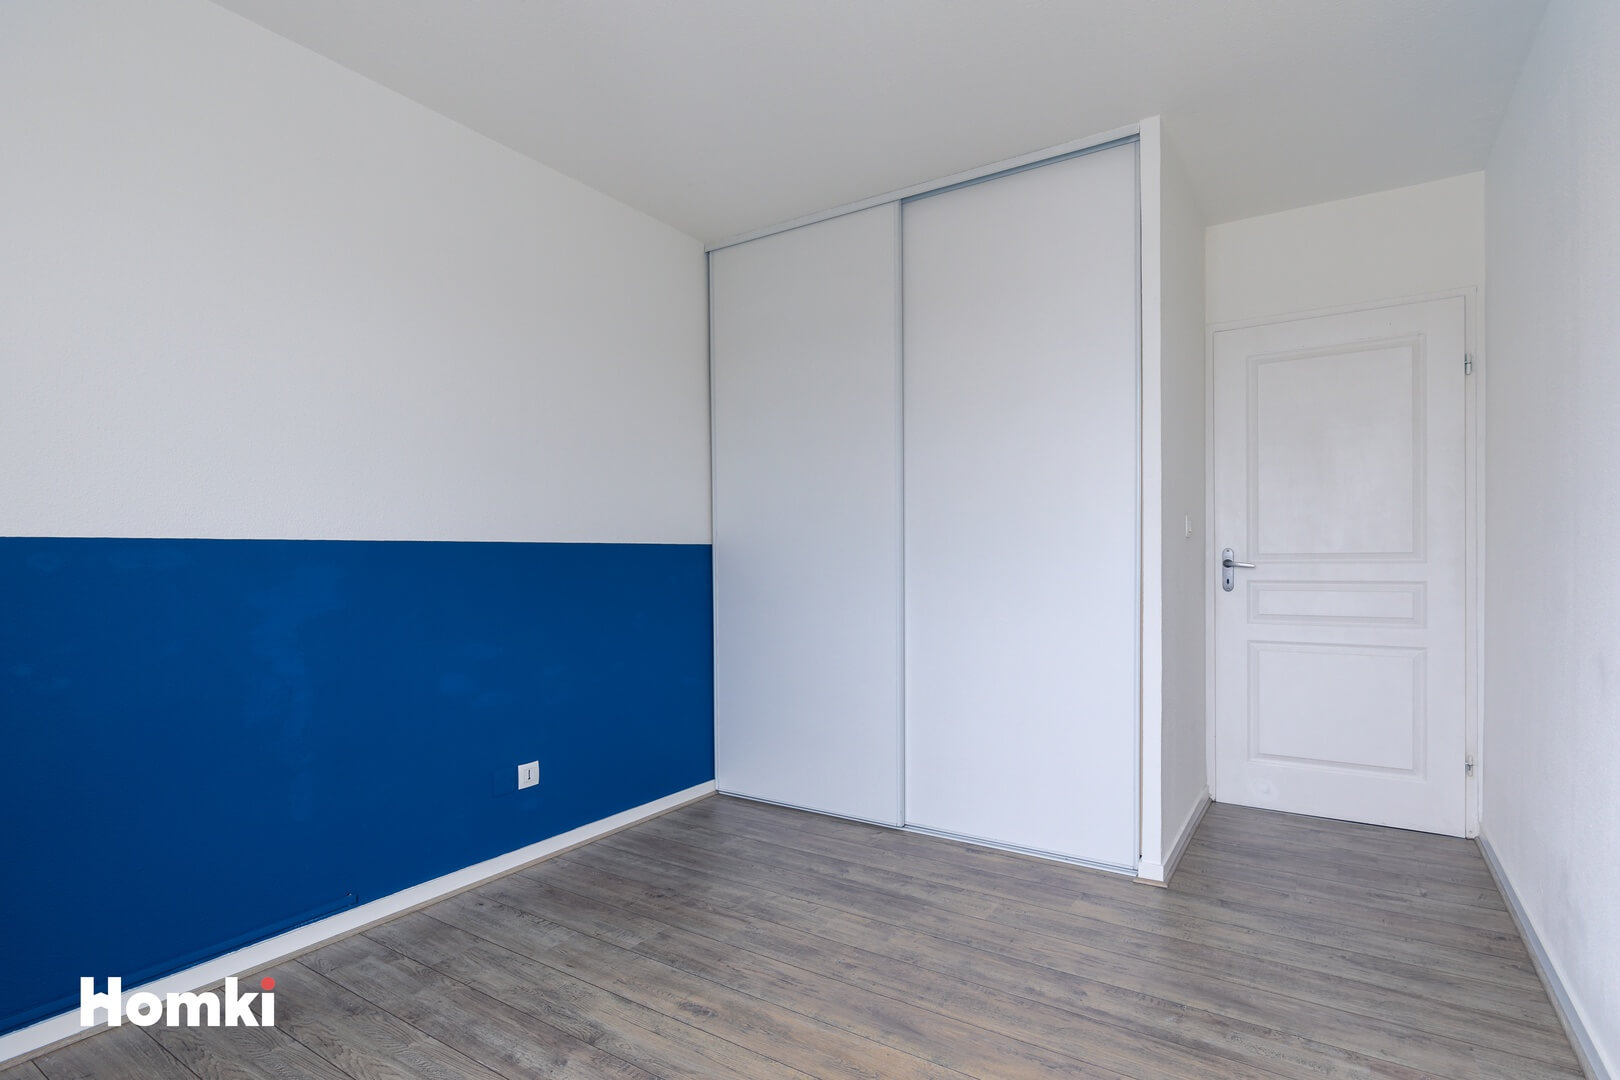 Homki - Vente Appartement  de 67.0 m² à Bordeaux 33100